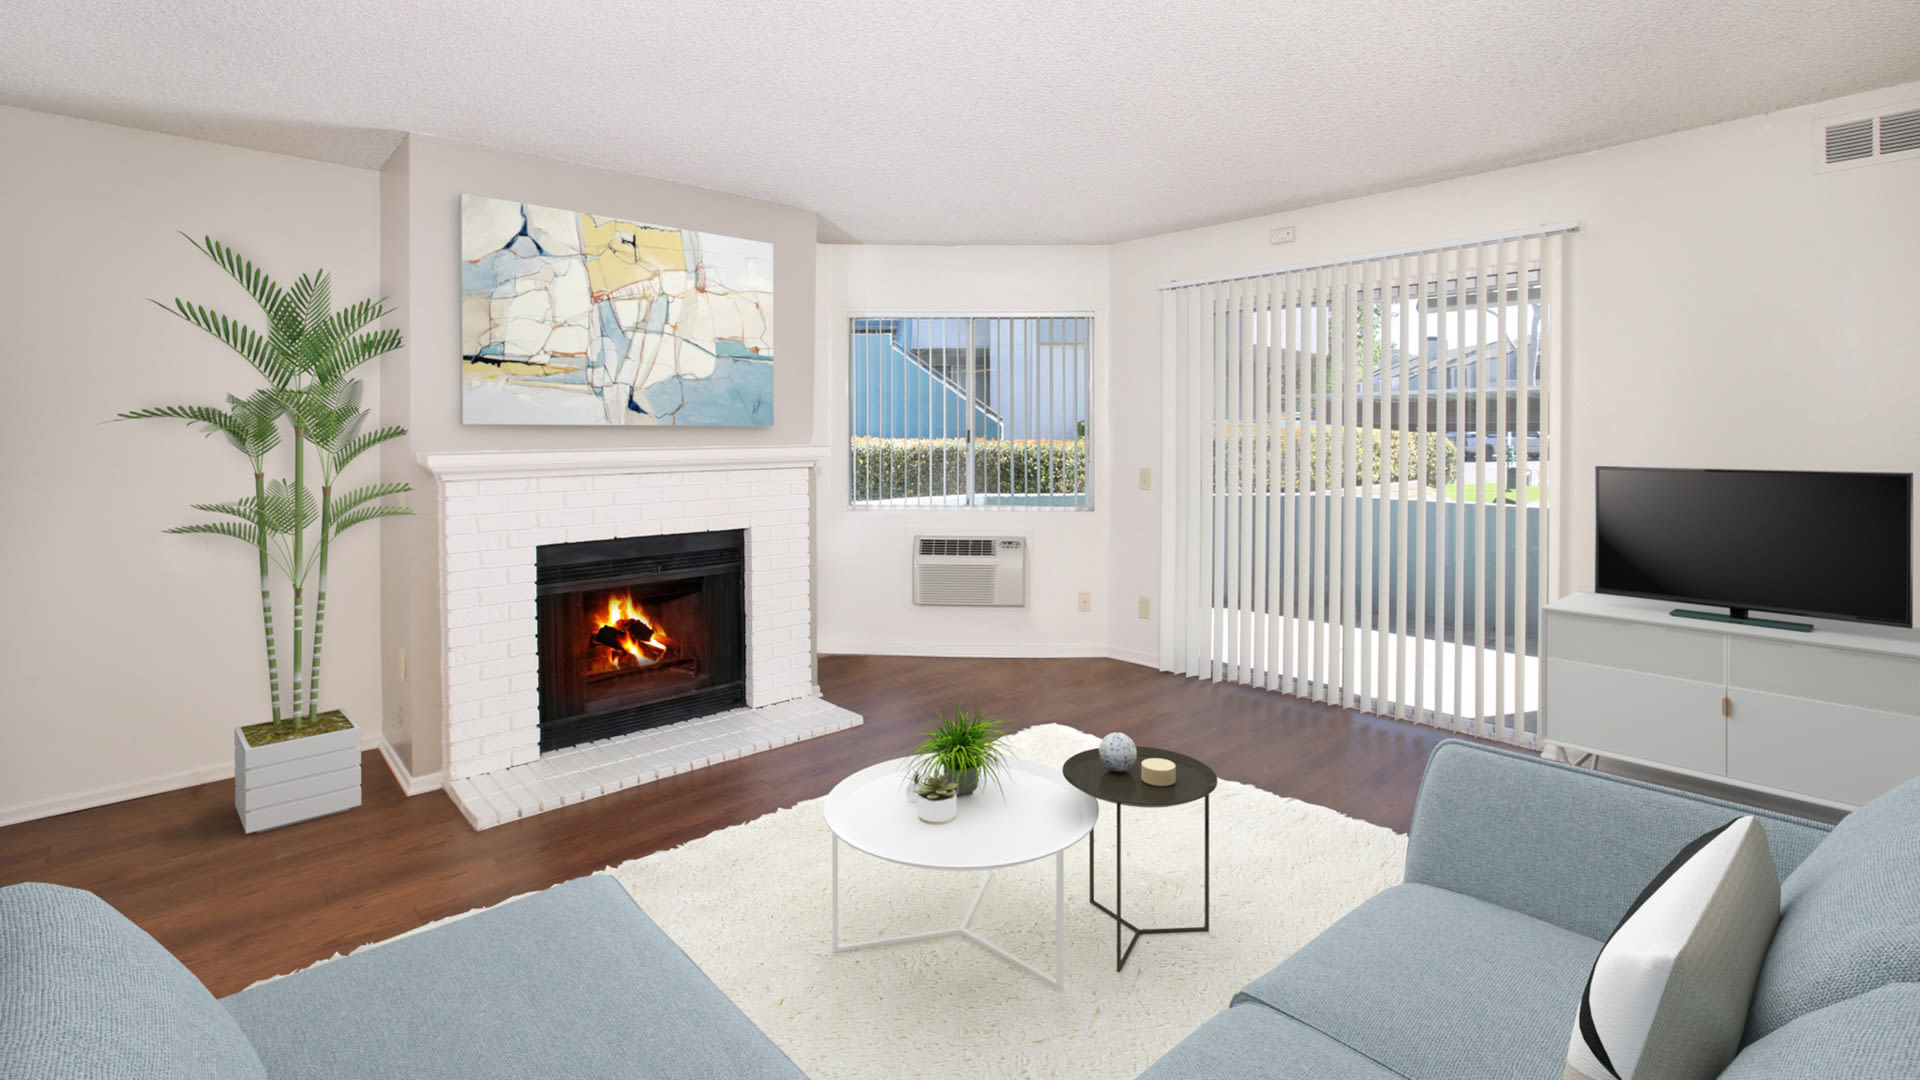 Villa Solana Apartments - Living Room with Hard Surface Flooring, Fireplace and Balcony